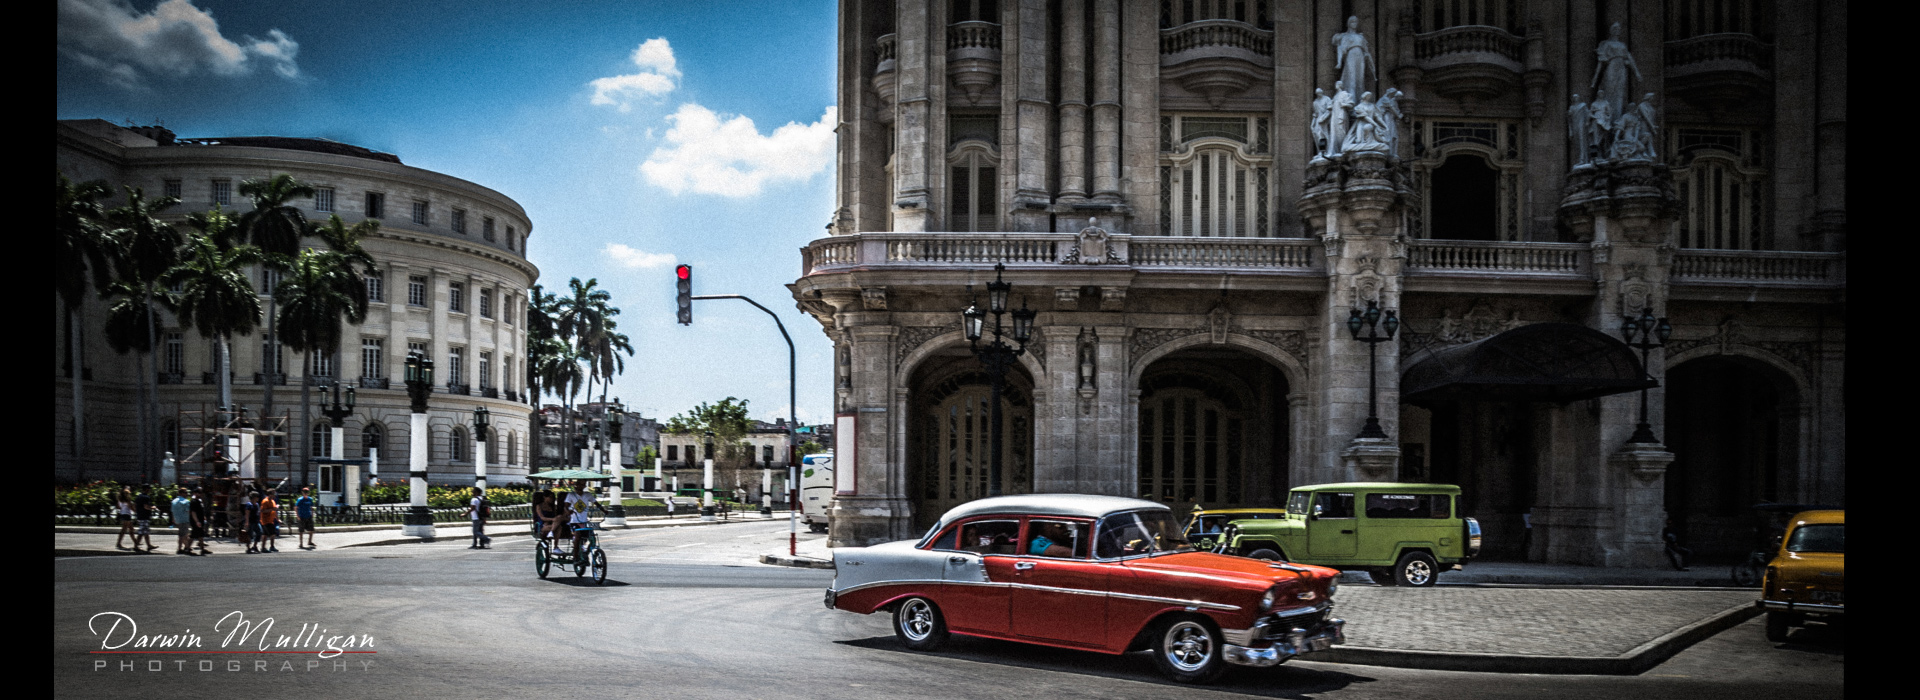 Old-1950-era-Chevy-Bel-Air-old-town-Havana-Cuba